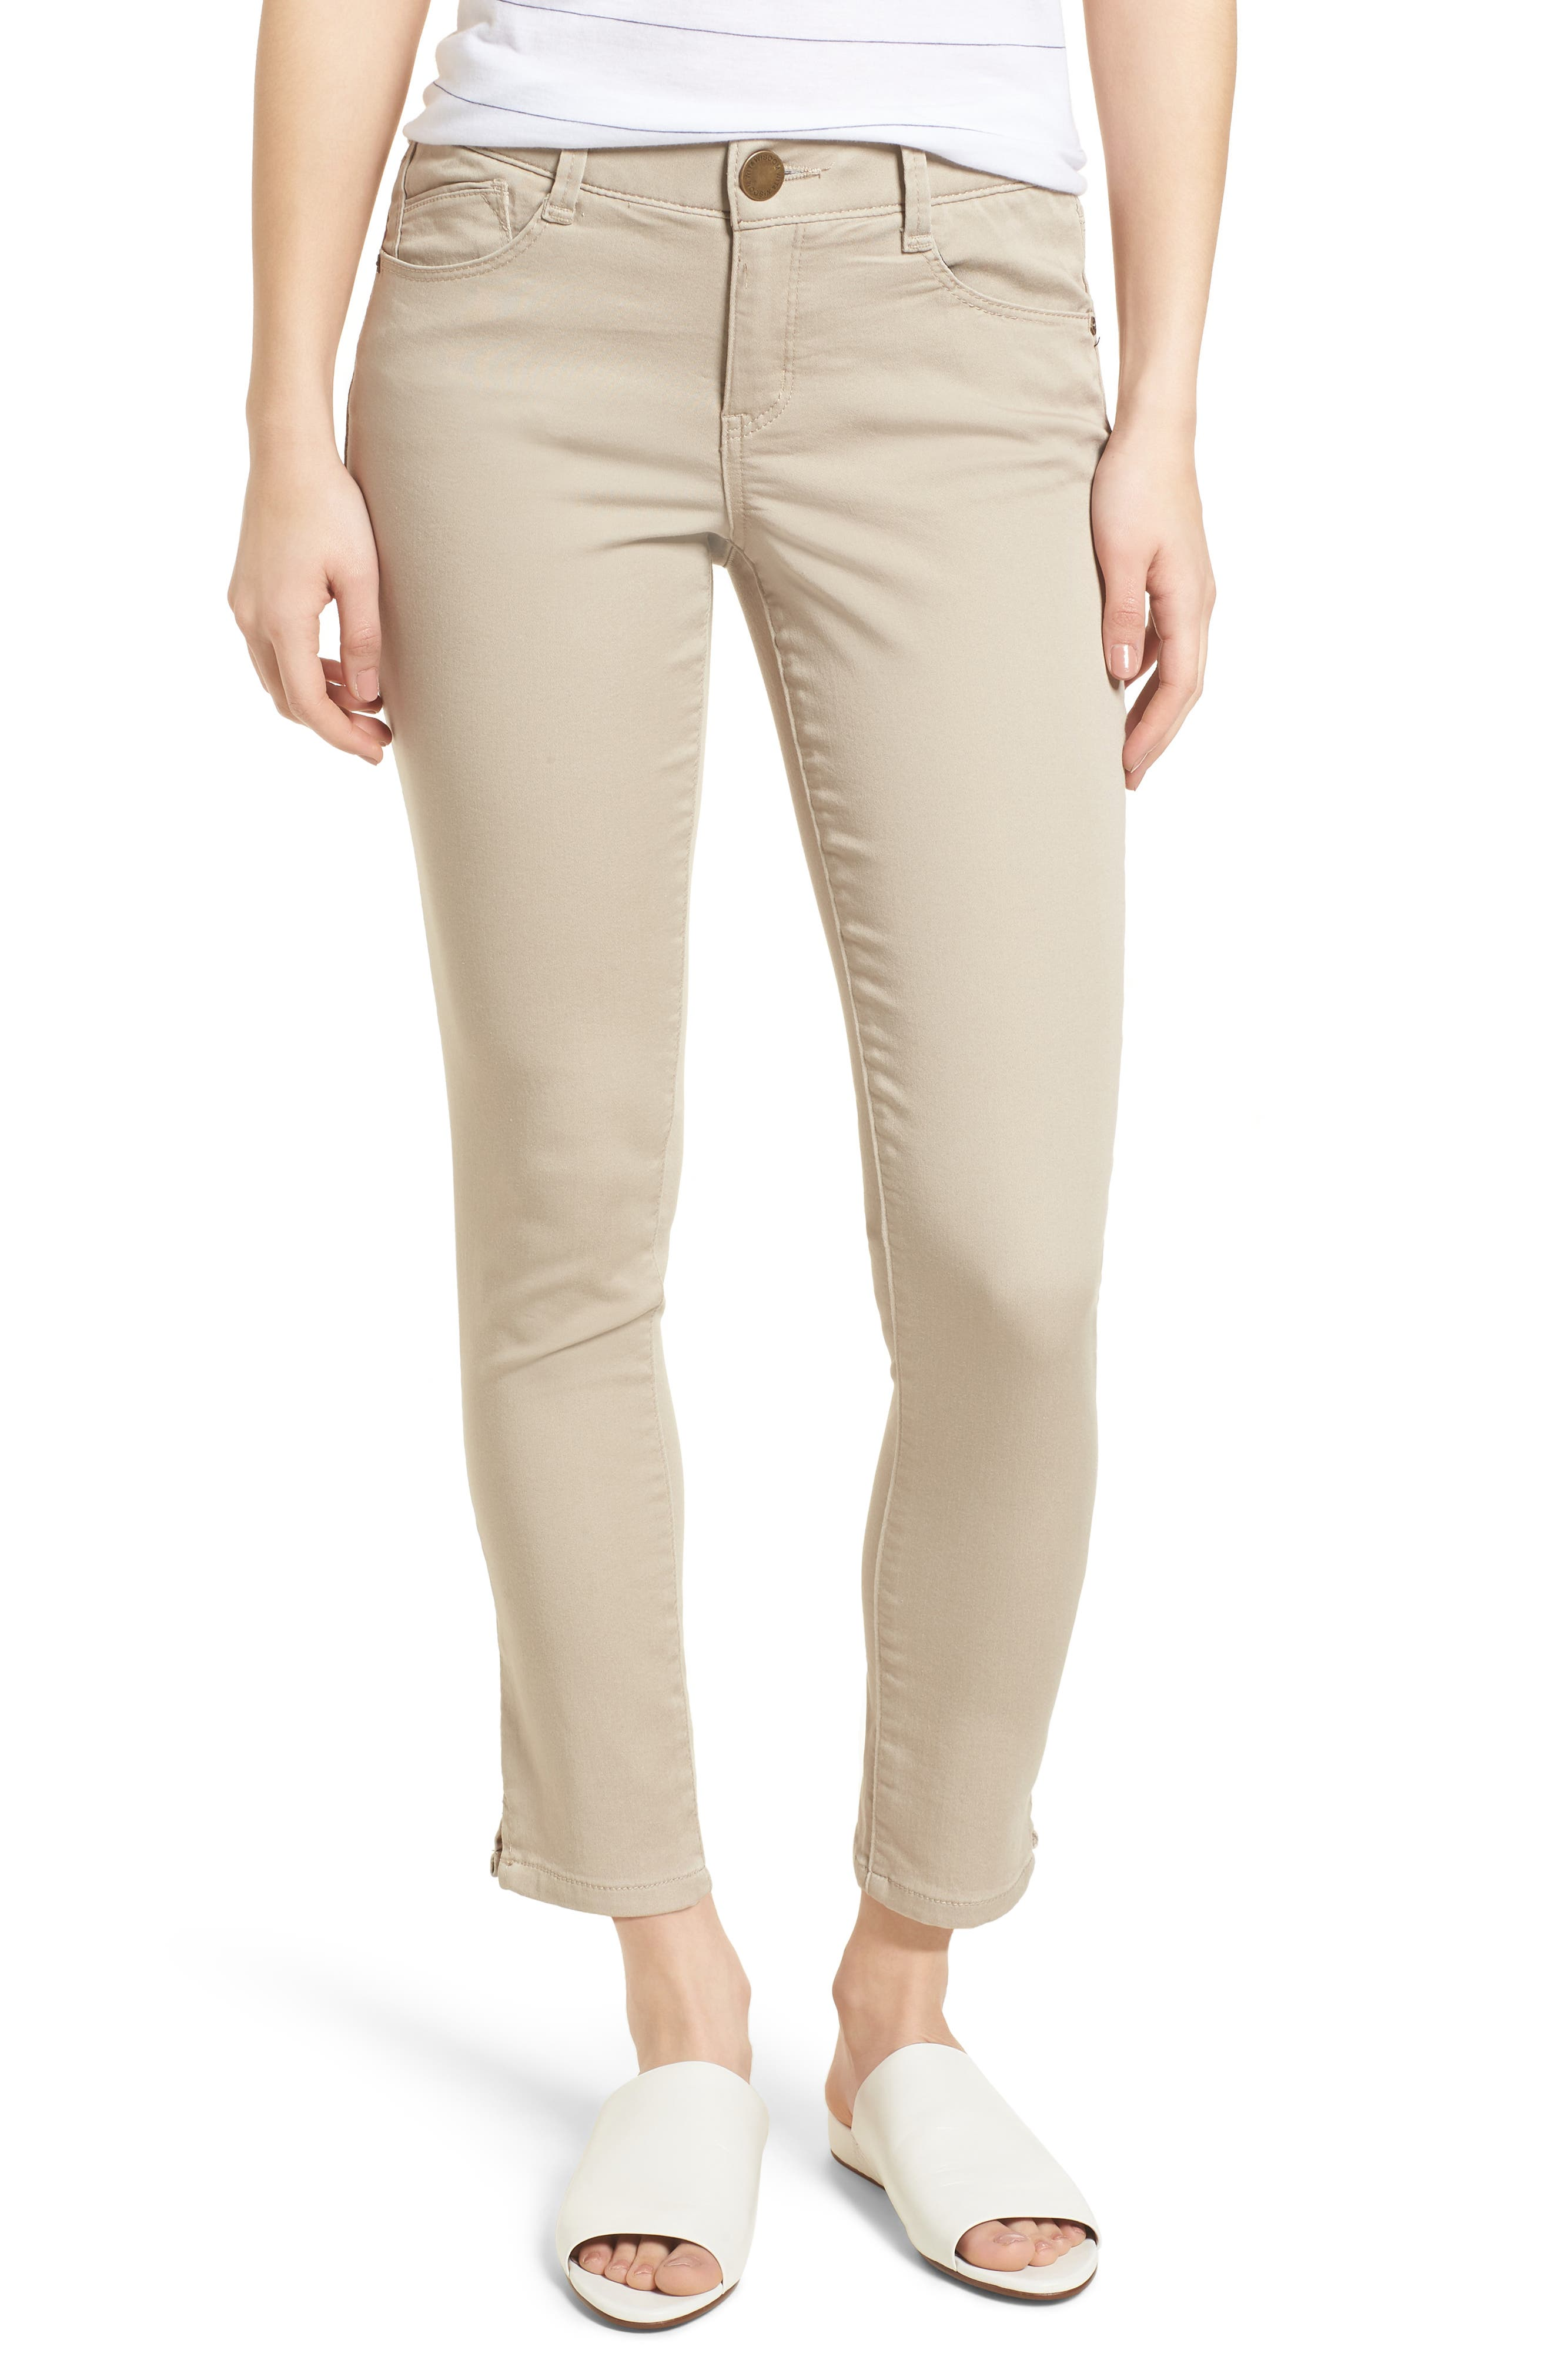 Wit & Wisdon Ab-solution Ankle Skimmer Jeans (Regular & Petite) (Nordstrom Exclusive)